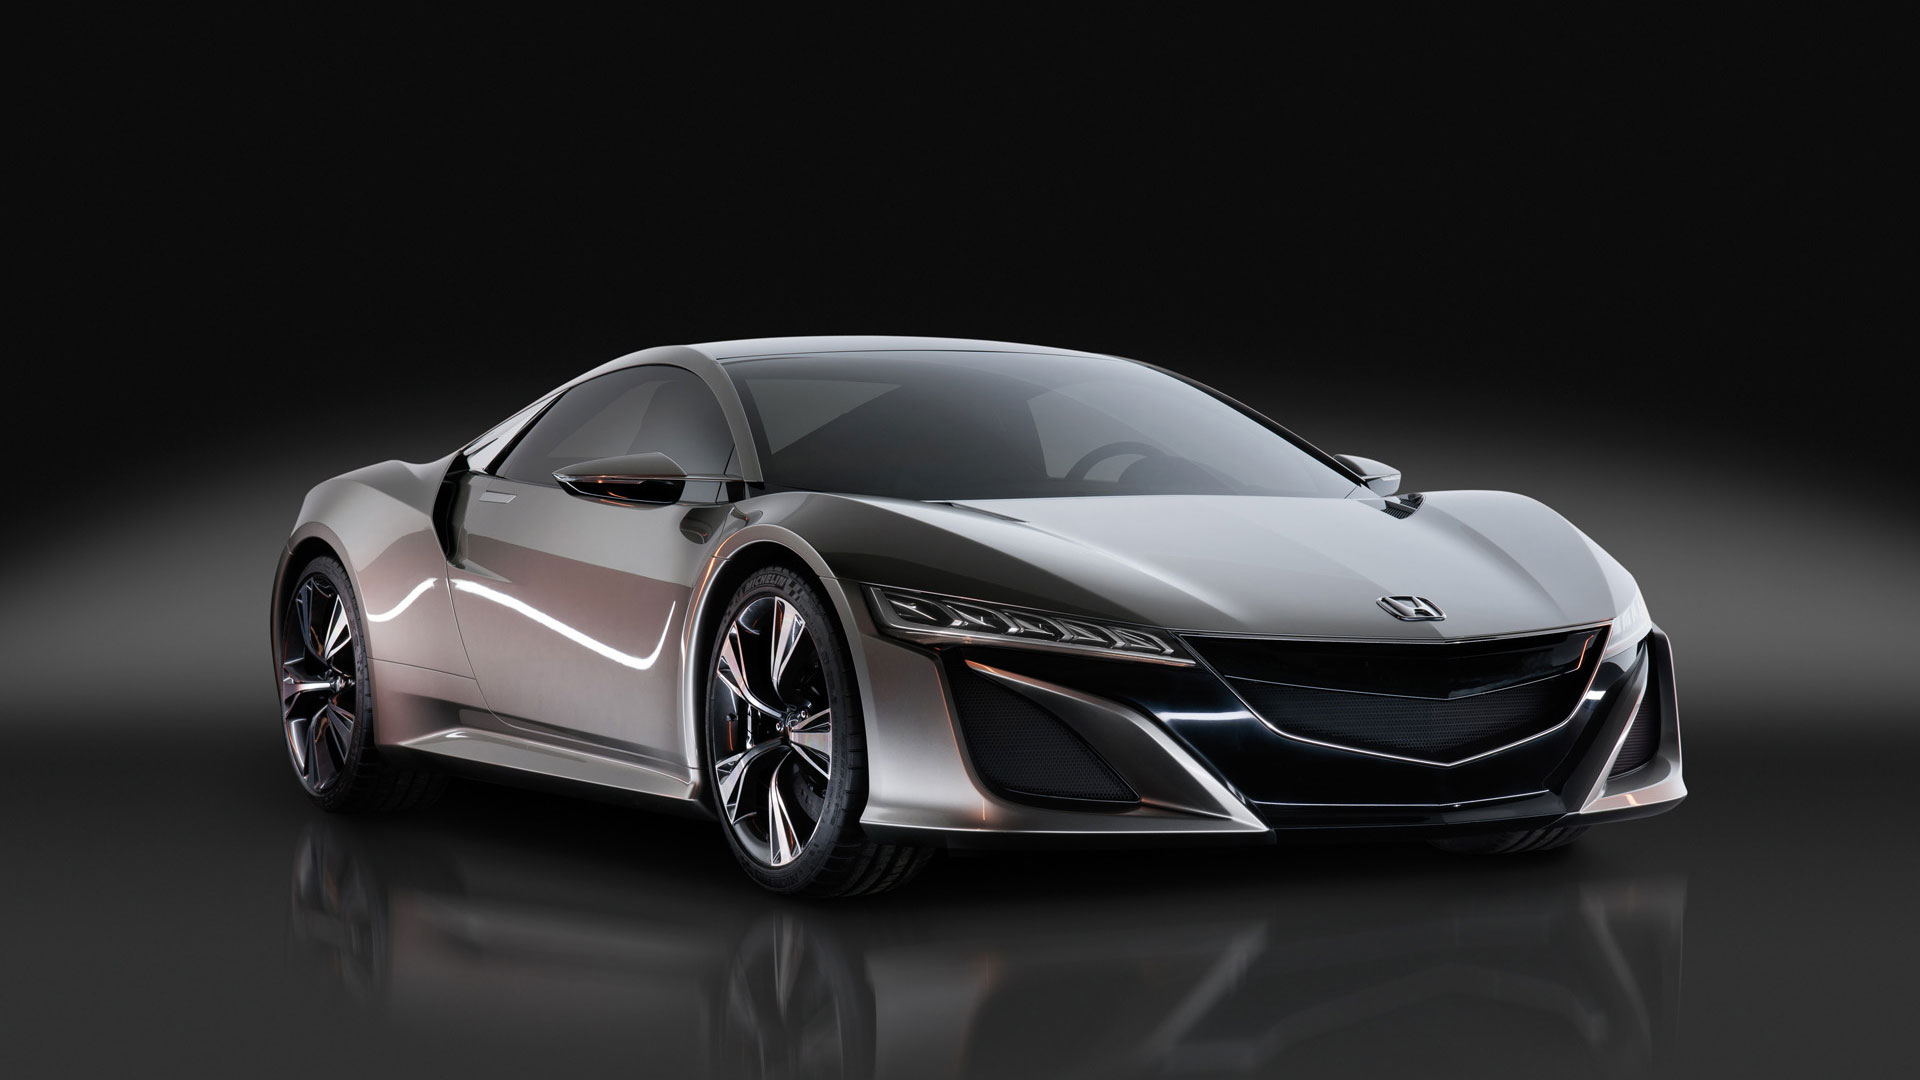 Honda Acura NSX Wallpapers PC #423 Wallpaper